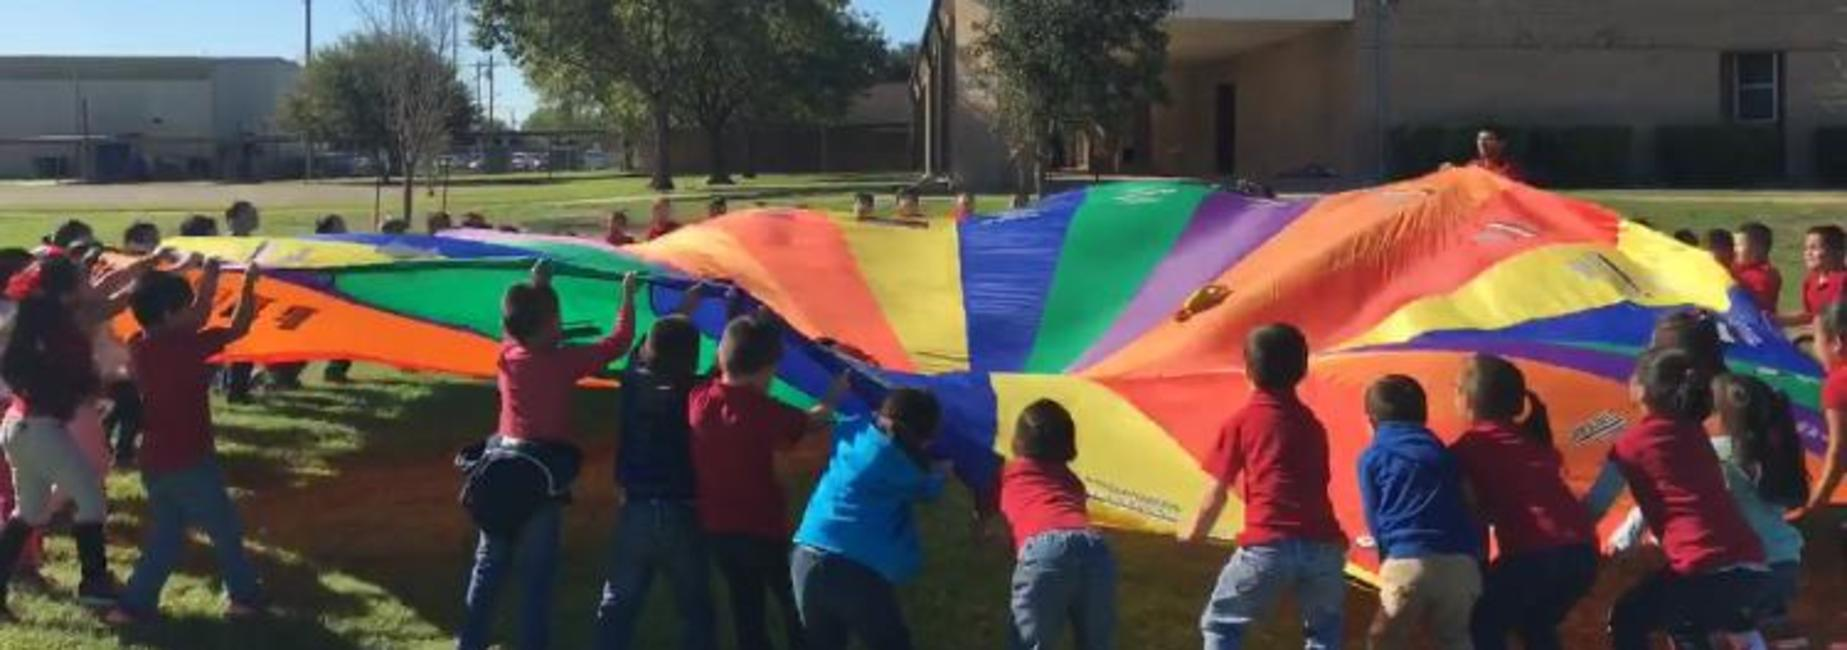 Parachuting with Kinder